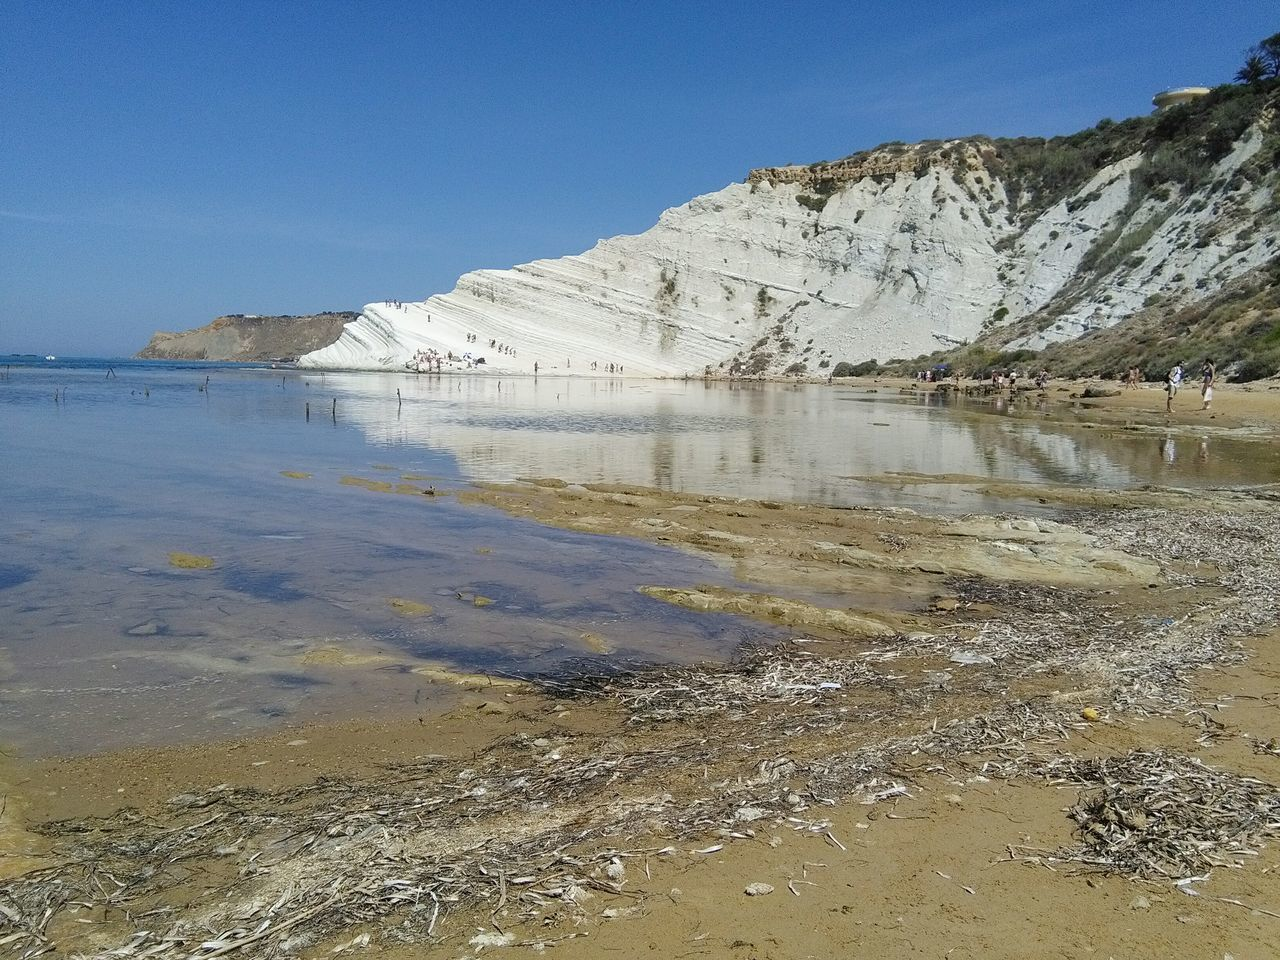 Scala Dei Turchi Realmonte Siciliabedda Beach Sand Nature Outdoors Sea Water No People Scenics Sky Day Blue Beauty In Nature Landscape Clear Sky Low Tide Sand Dune